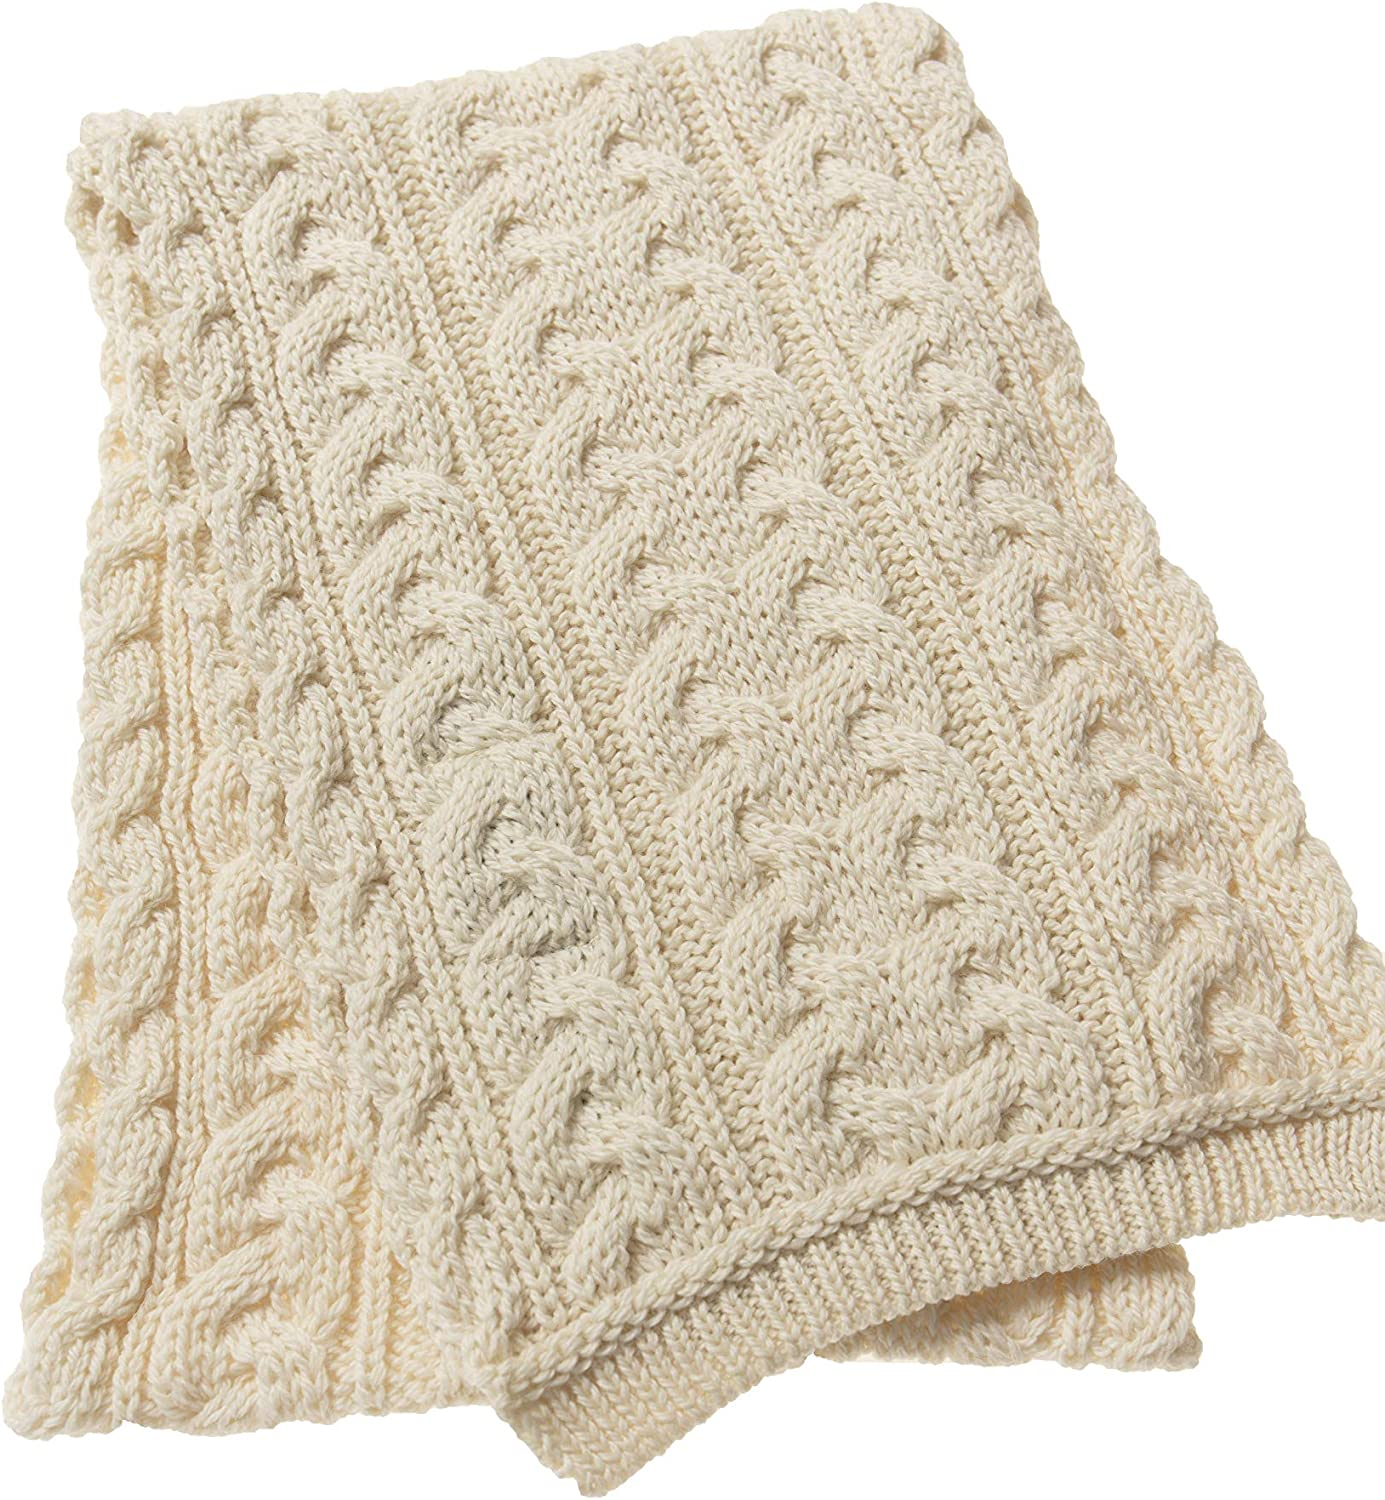 Aran Crafts Irish Cable Knitted Heavyweight Scarf 10